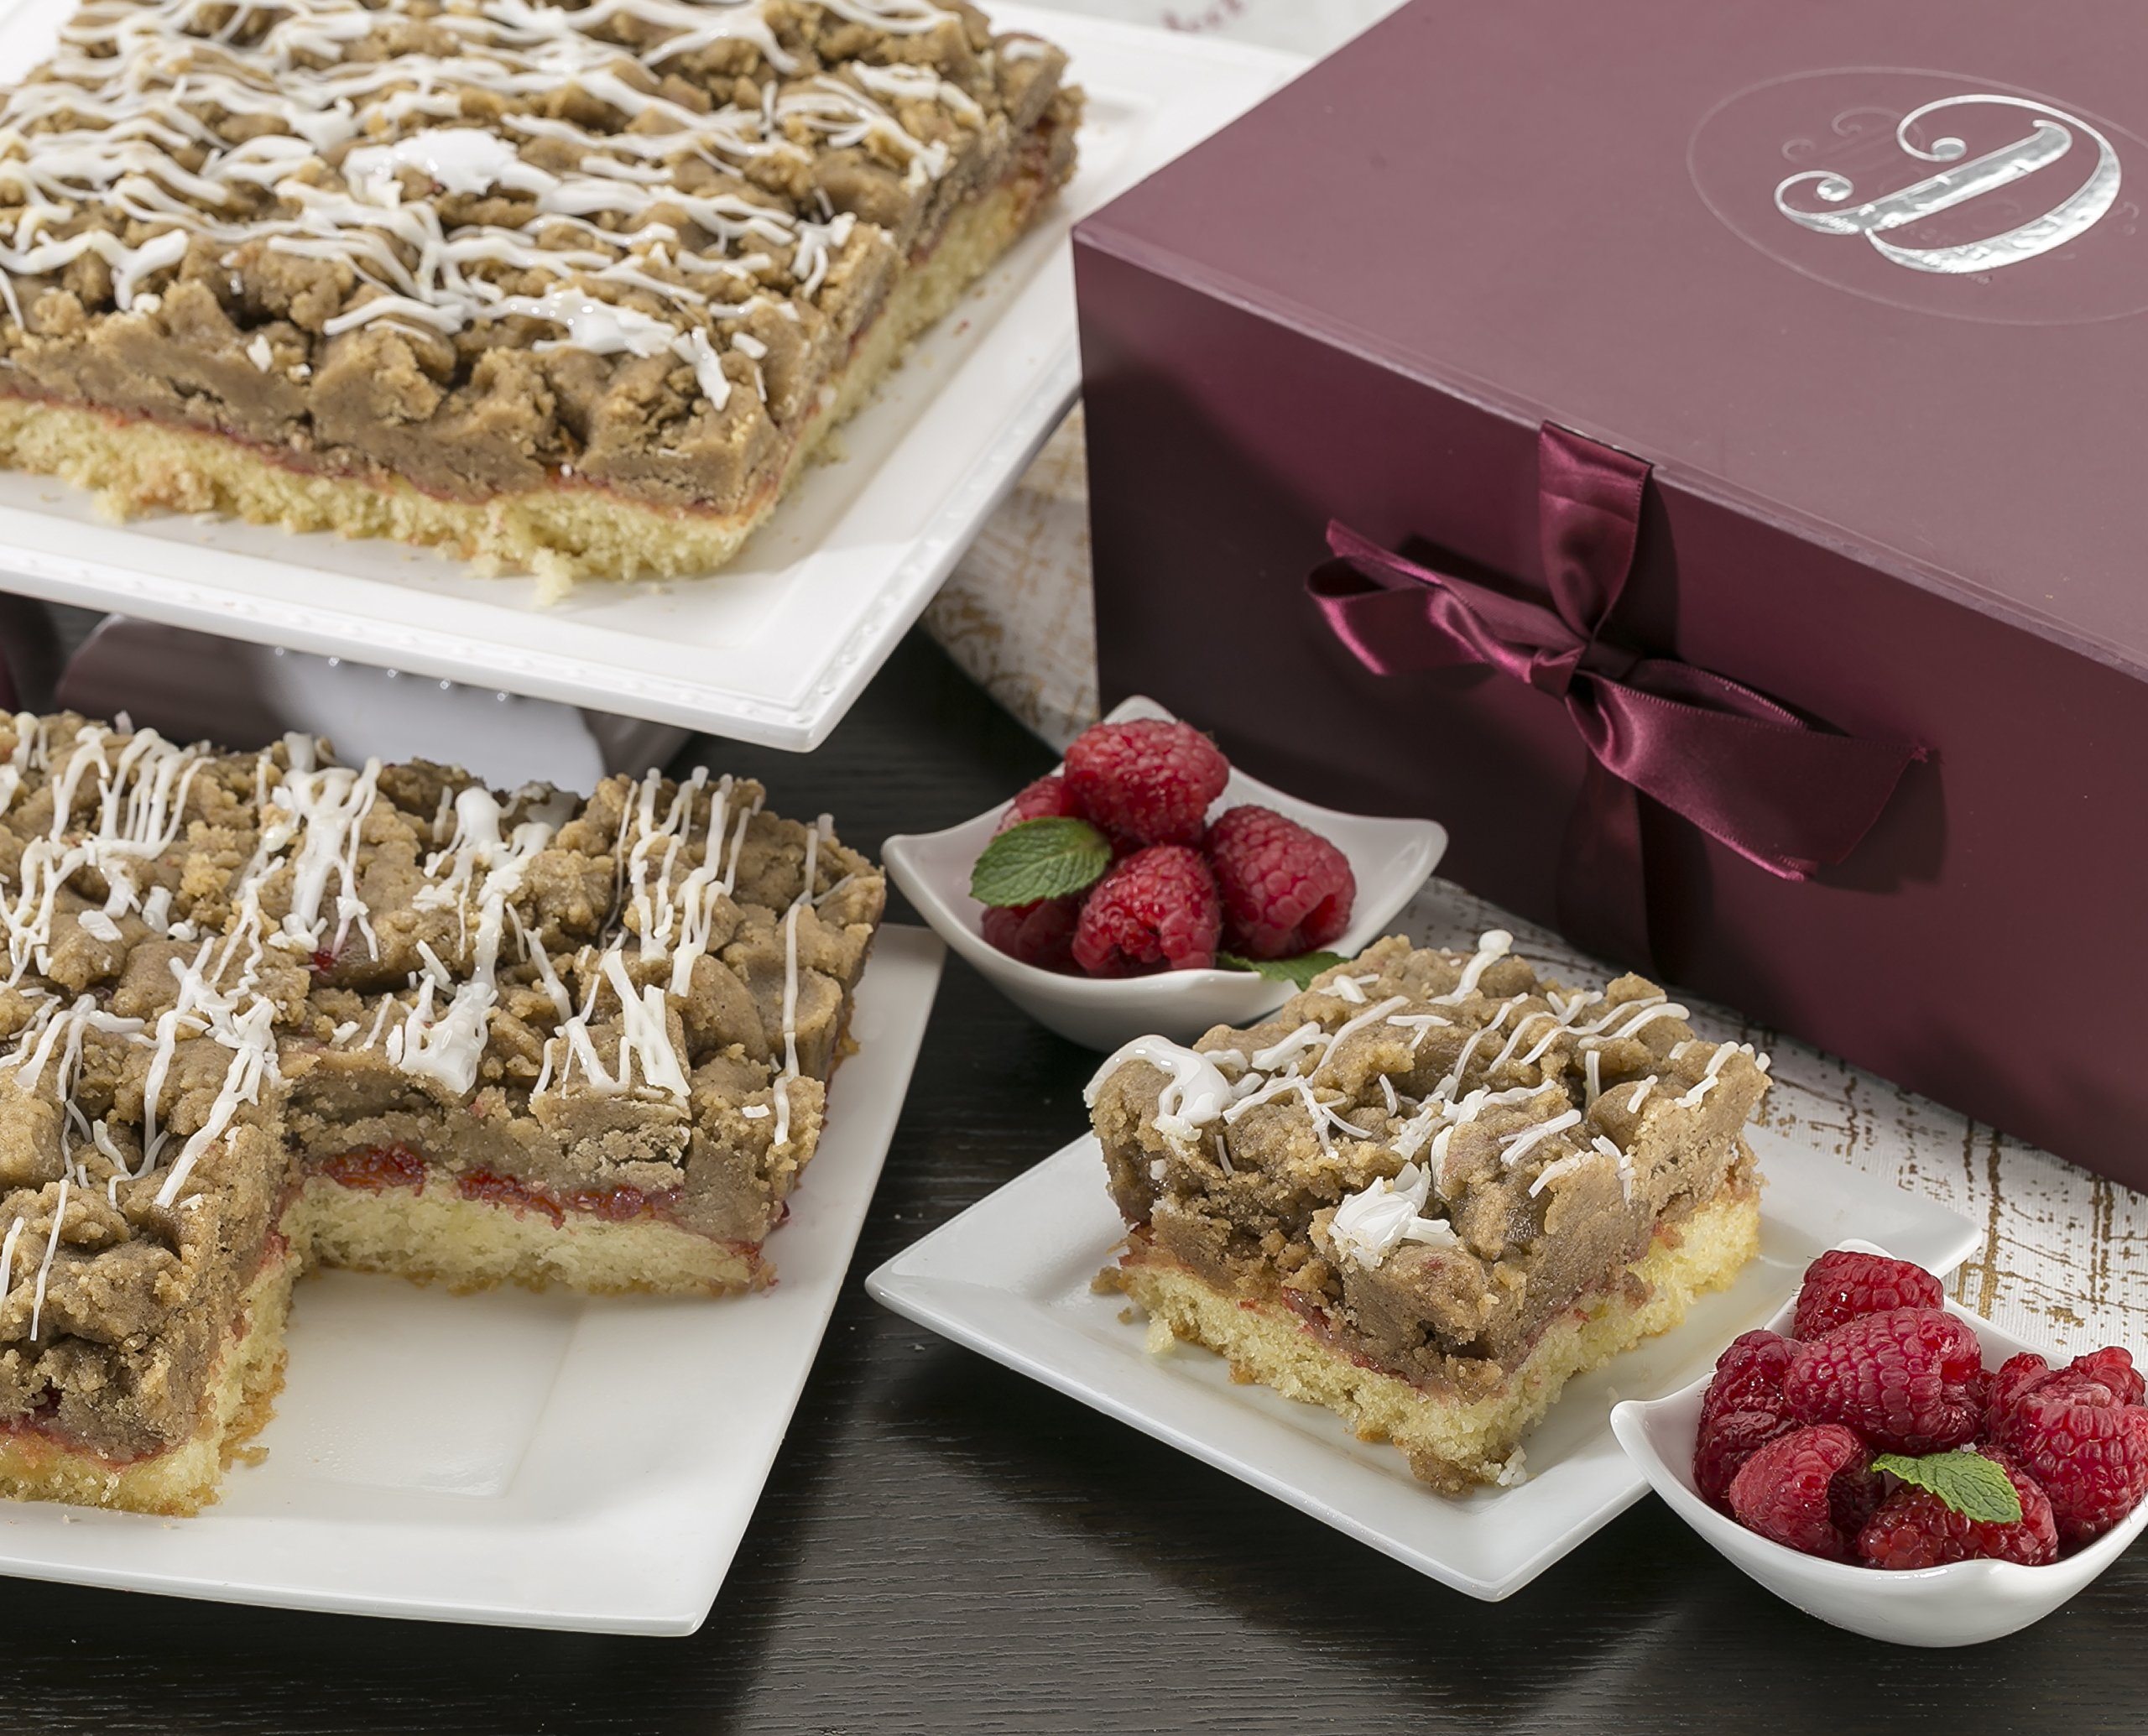 Dulcet Scrumptious Raspberry Crumb Cake- Top Gift Basket for Men and Women. Unique and Tasty and Great Gift Idea for Friends and Family or Office Gatherings! Includes 2 Boxes of Crumb Cakes (8''x8'')